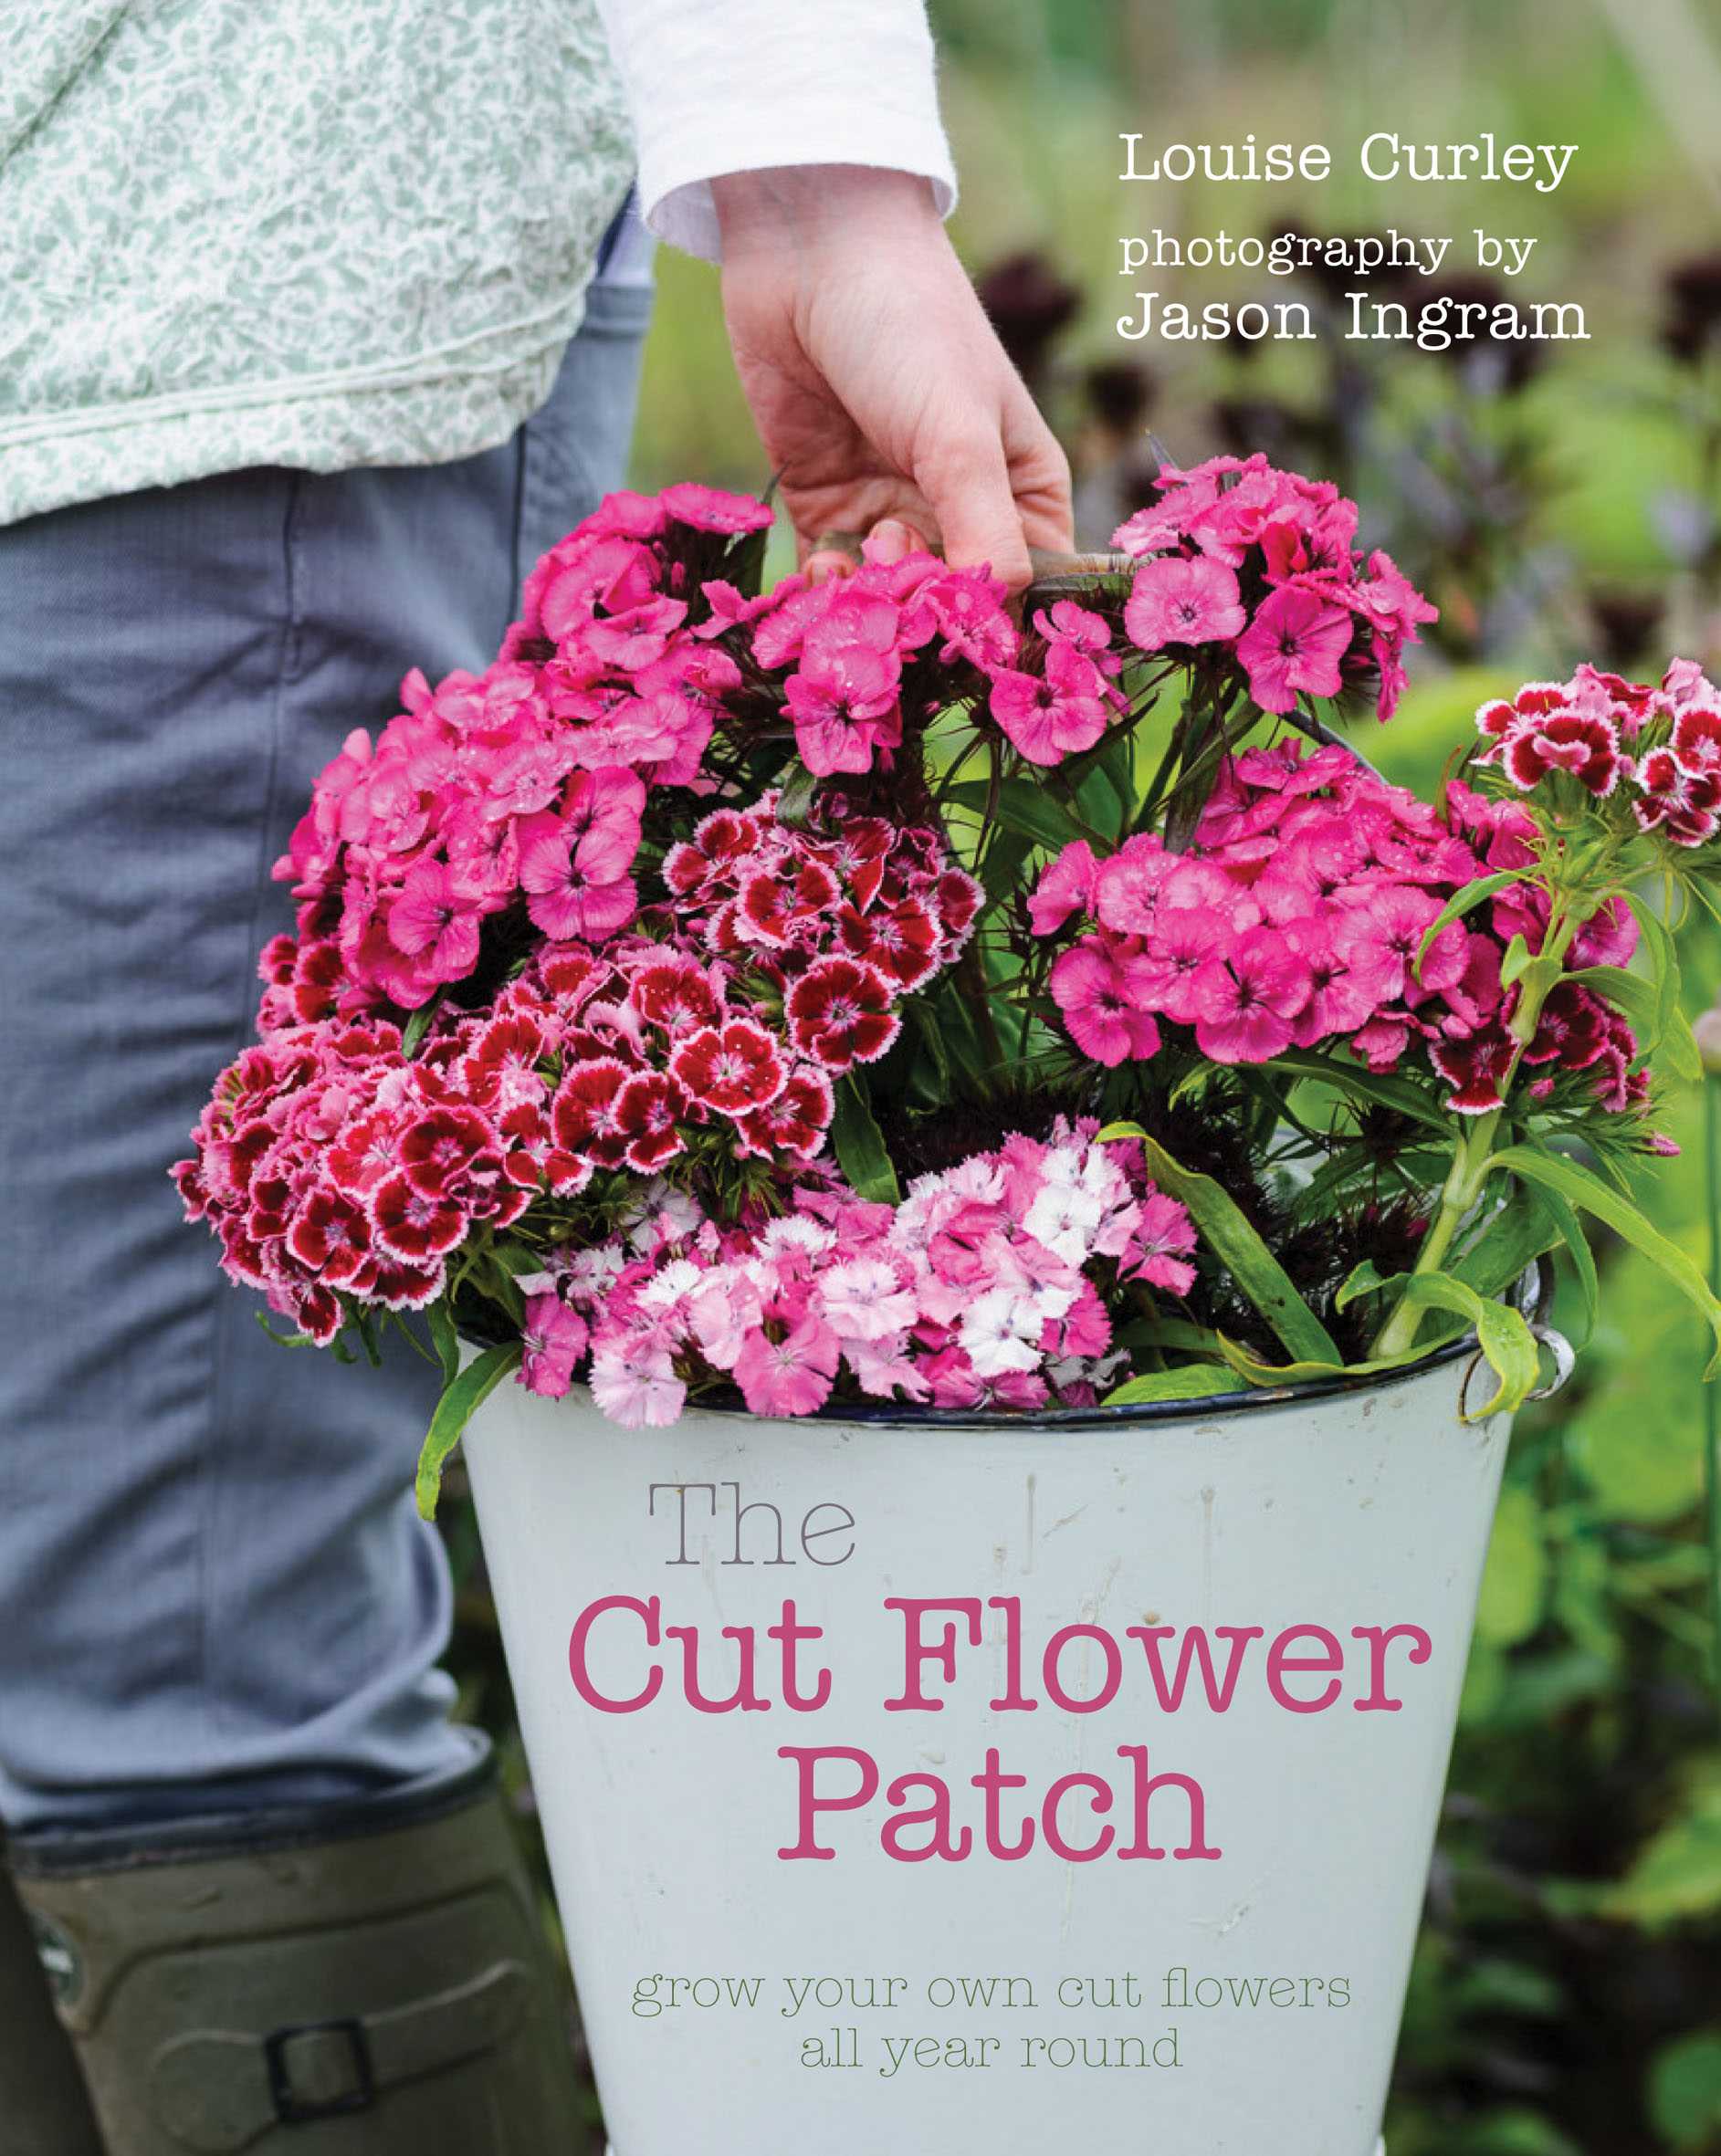 My Book - The Cut Flower Patch. Available to buy from the RHS online bookshop.